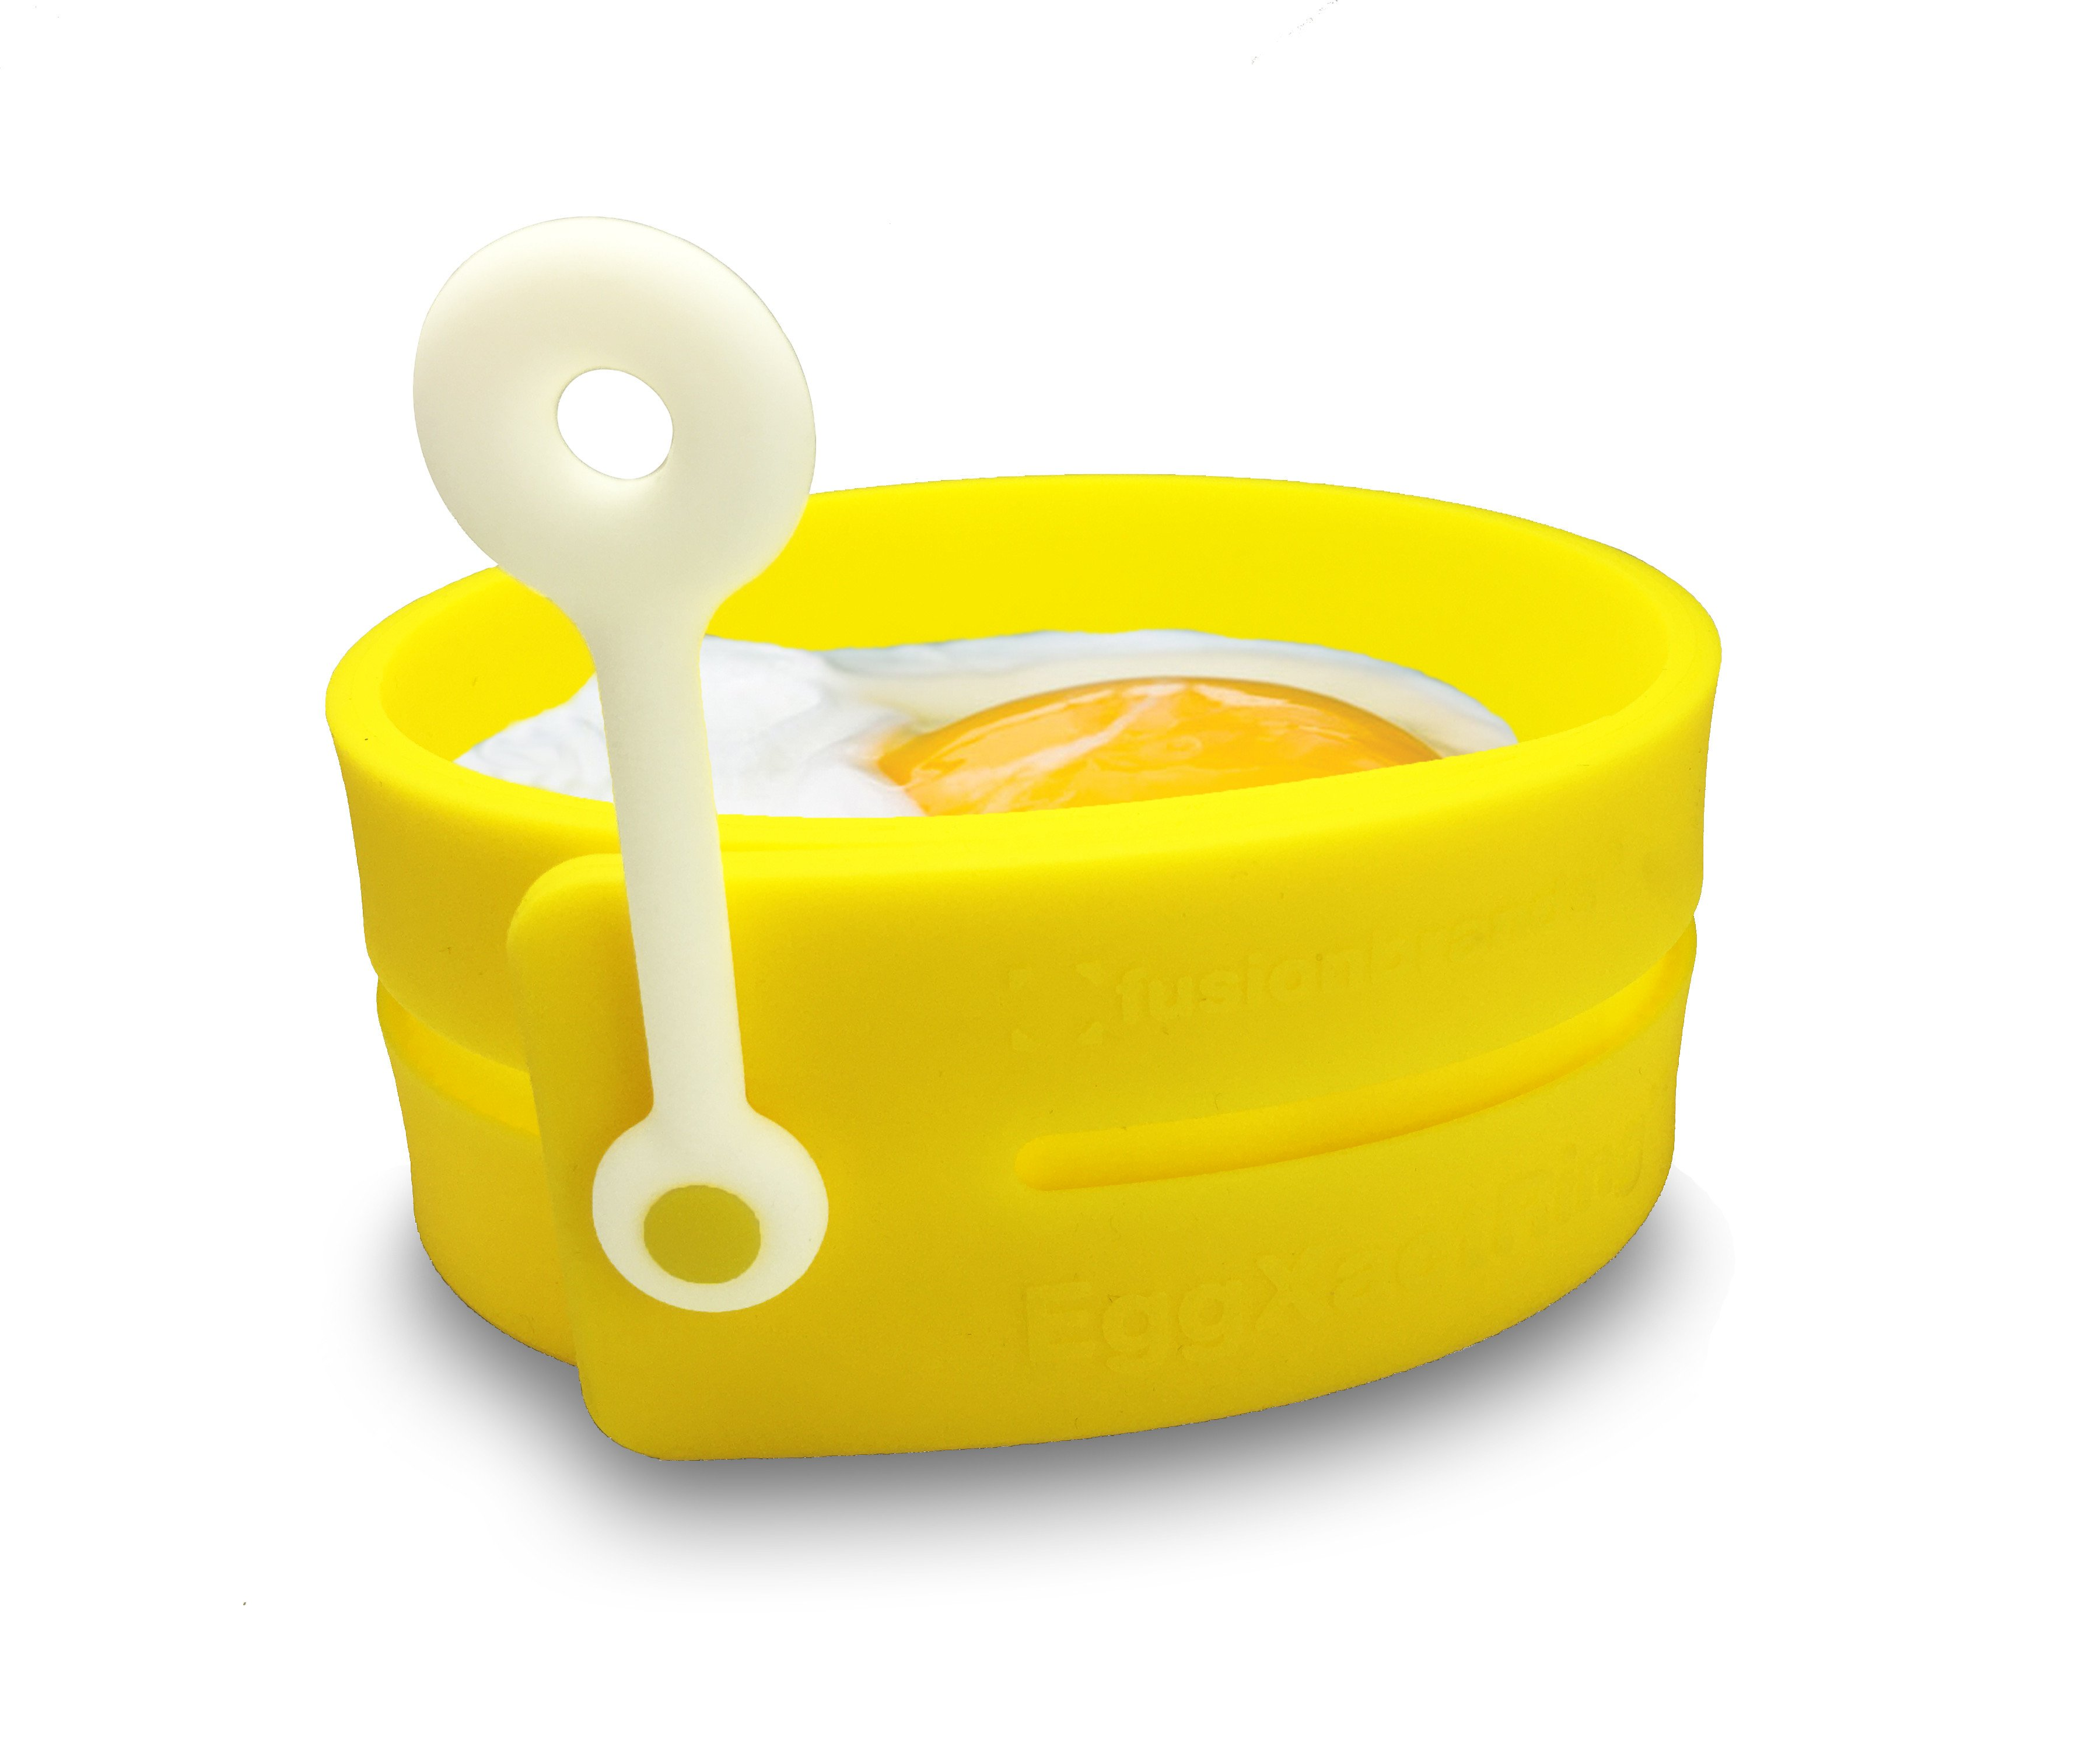 Fusionbrands EggXact Adjustable Silicone Food Ring sh/51142